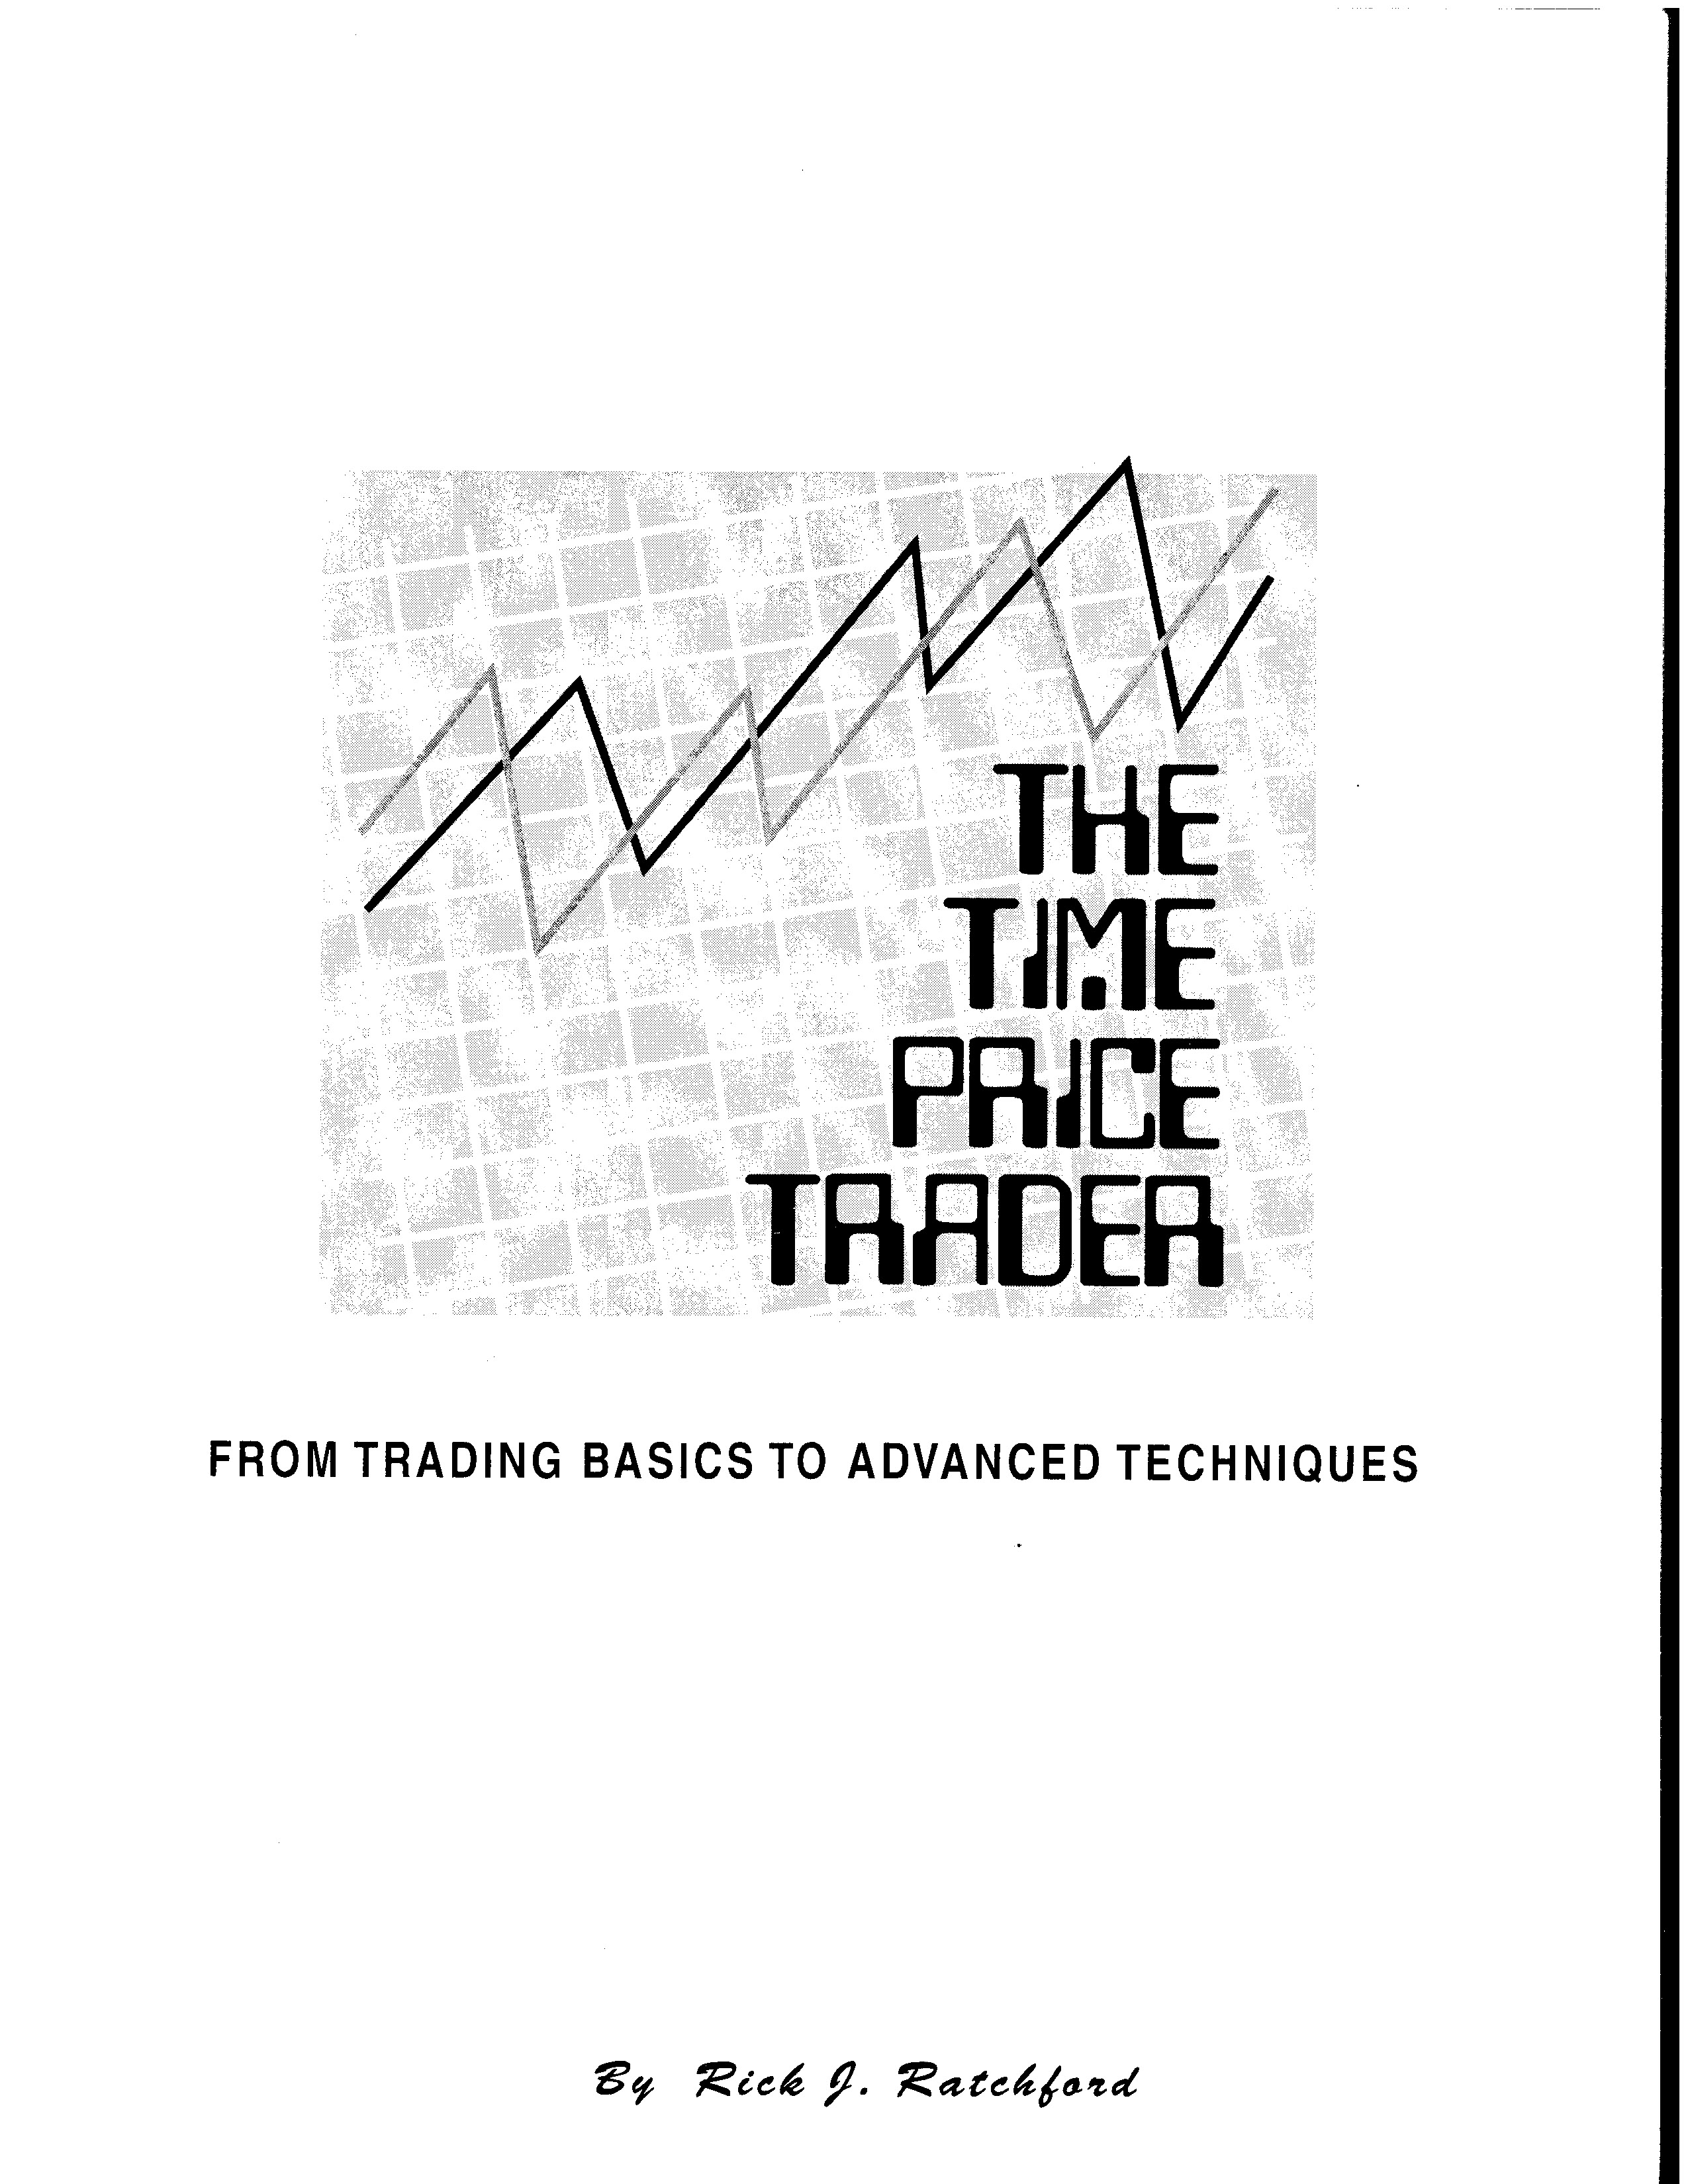 The Time Price Trader cover